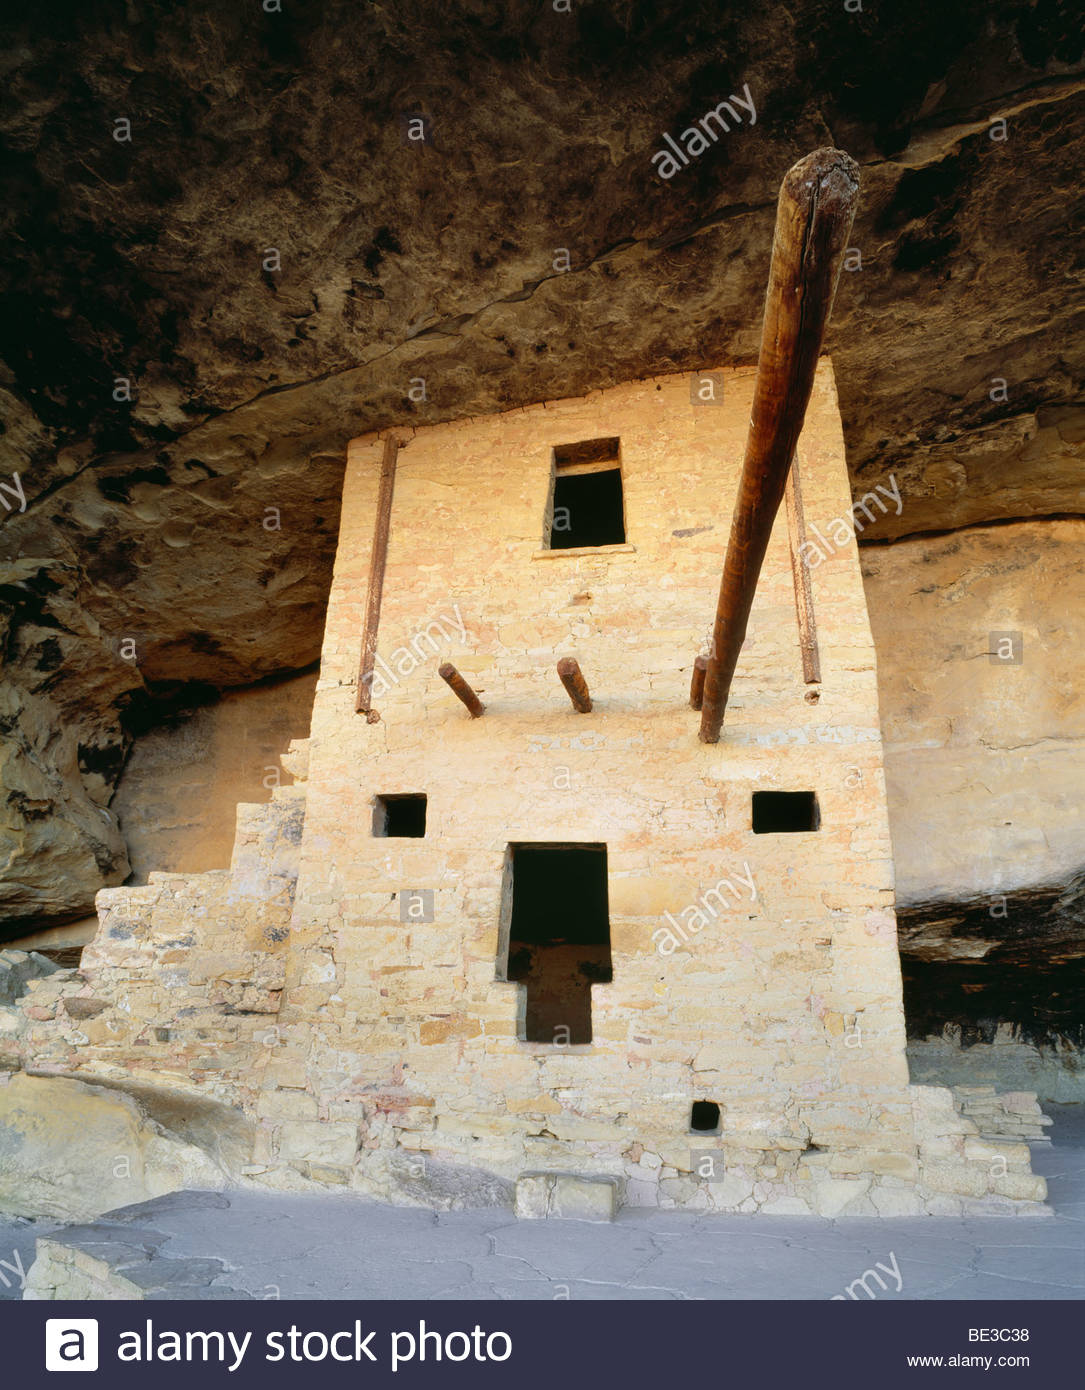 Balcony House.  Anasazi cliff dwelling at Mesa Verde National Park, Colorado. - Stock Image